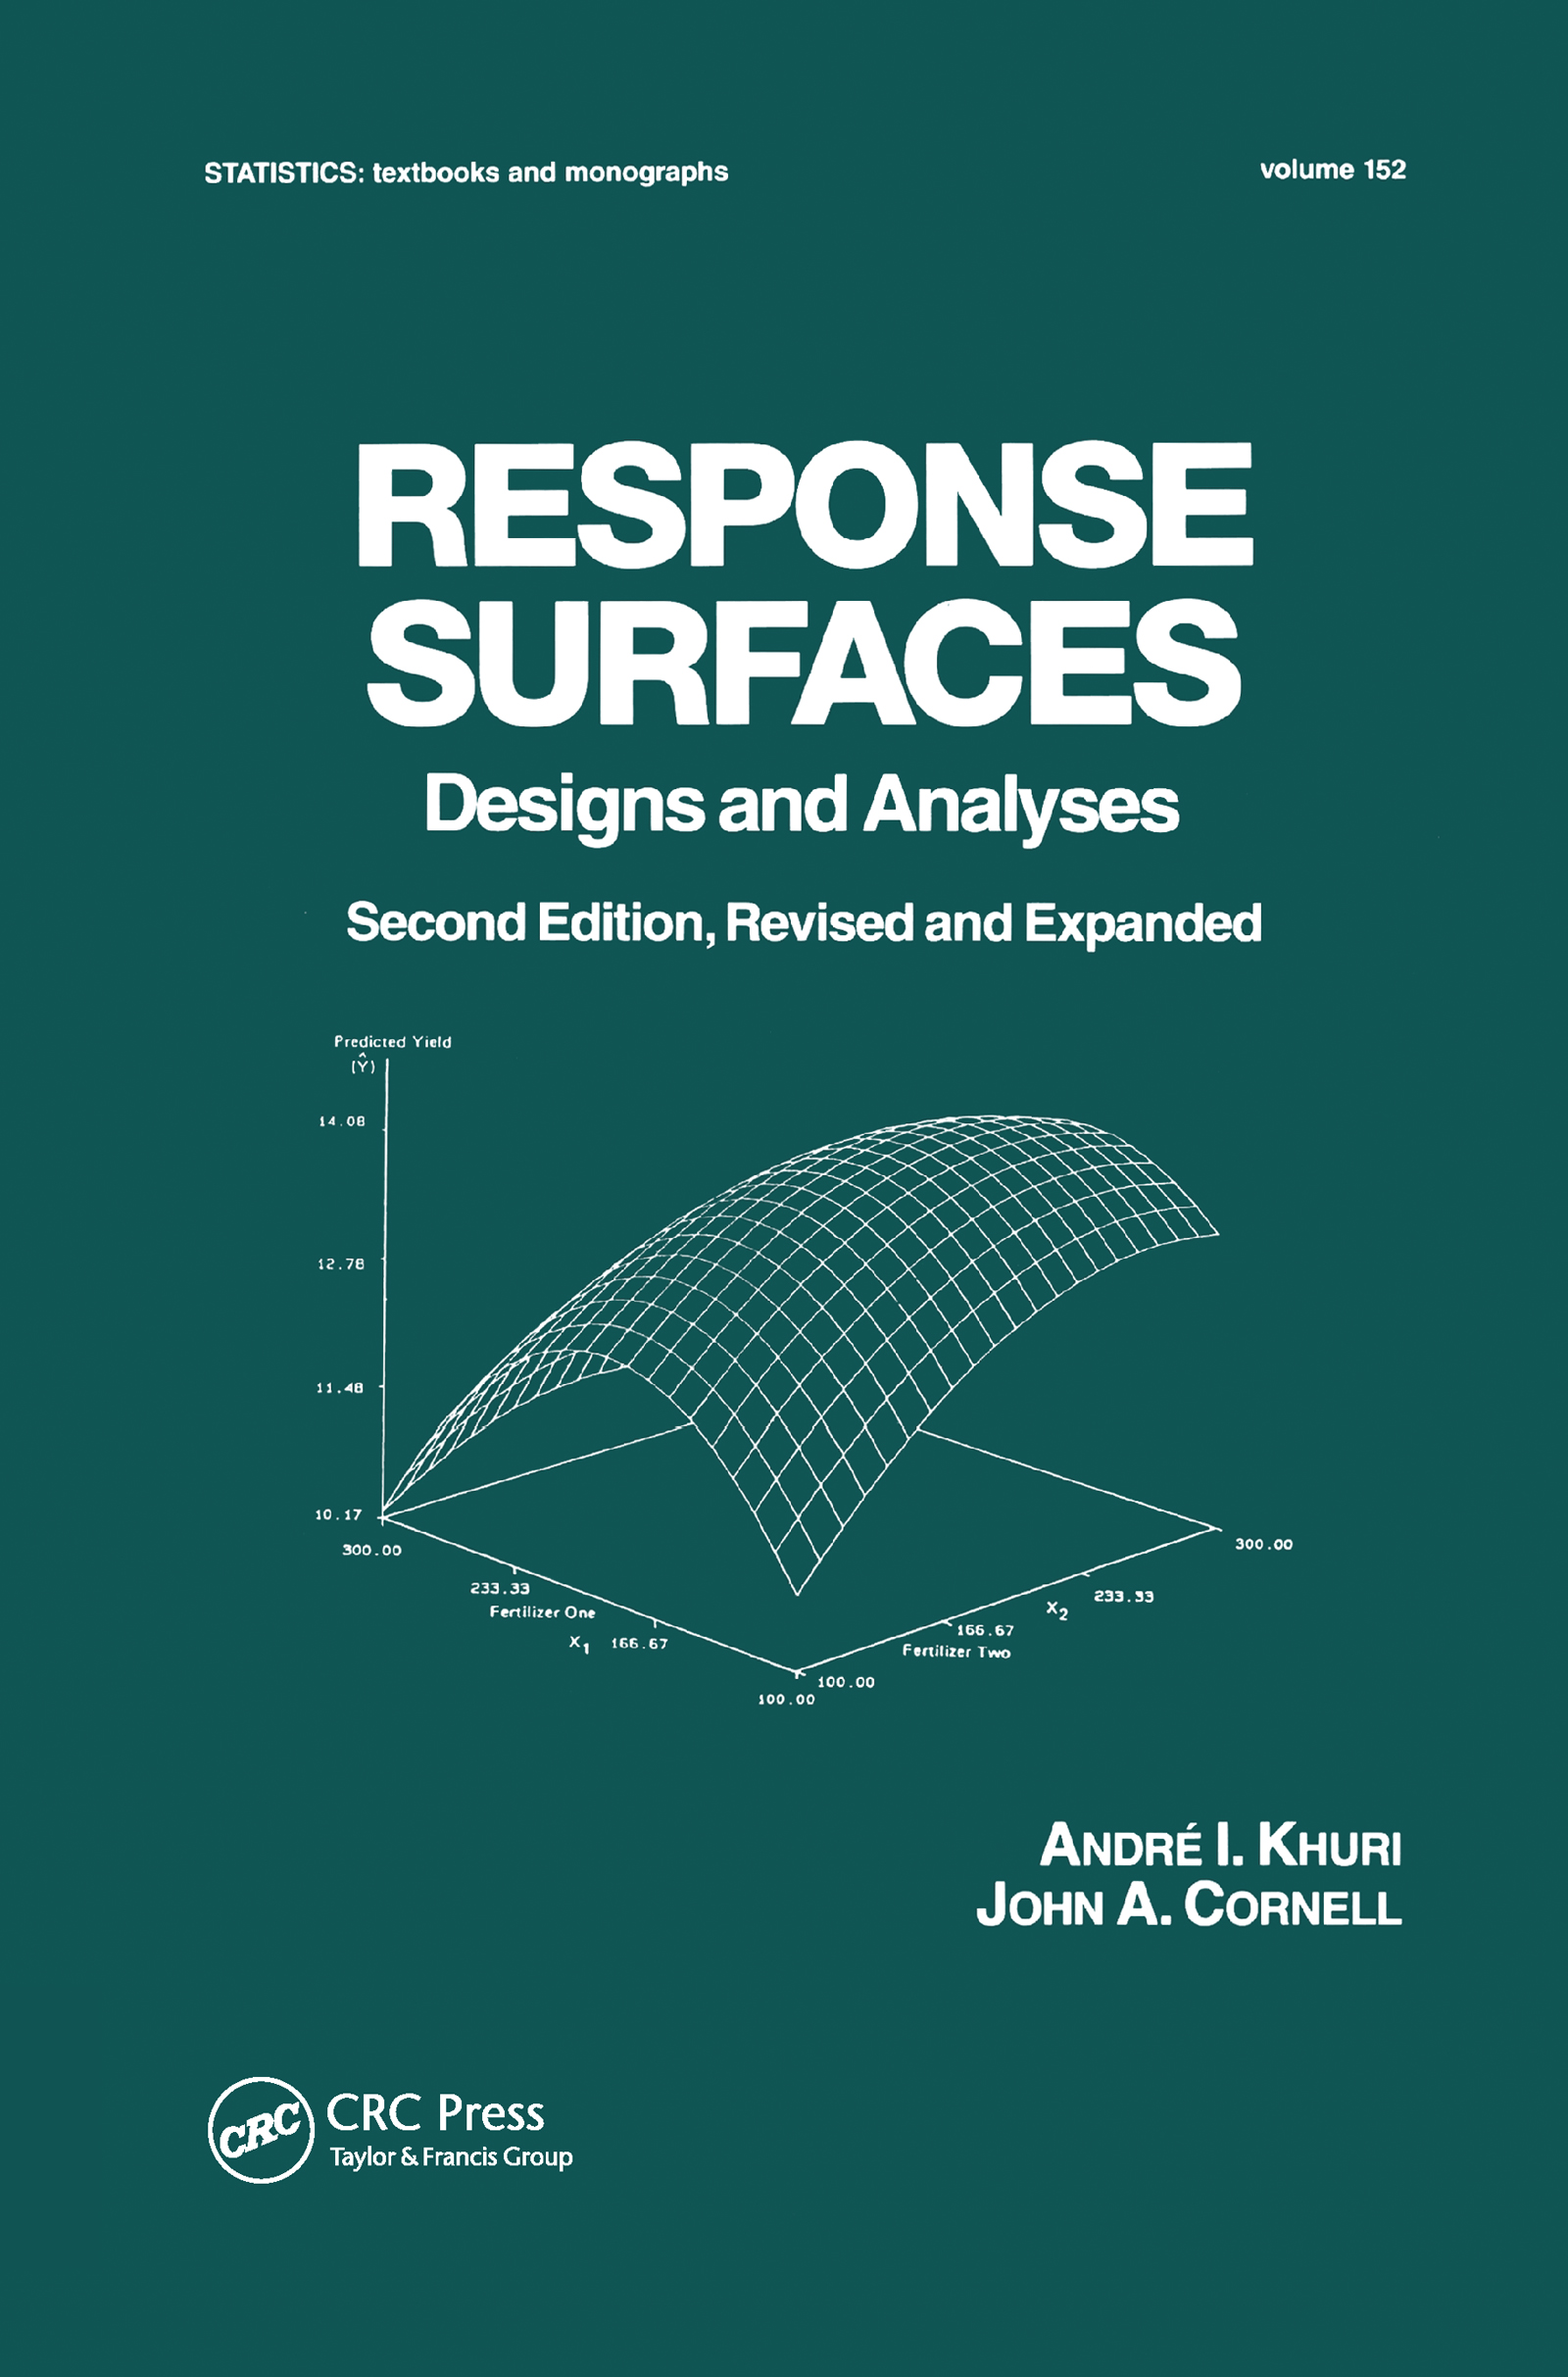 Response Surfaces: Designs and Analyses